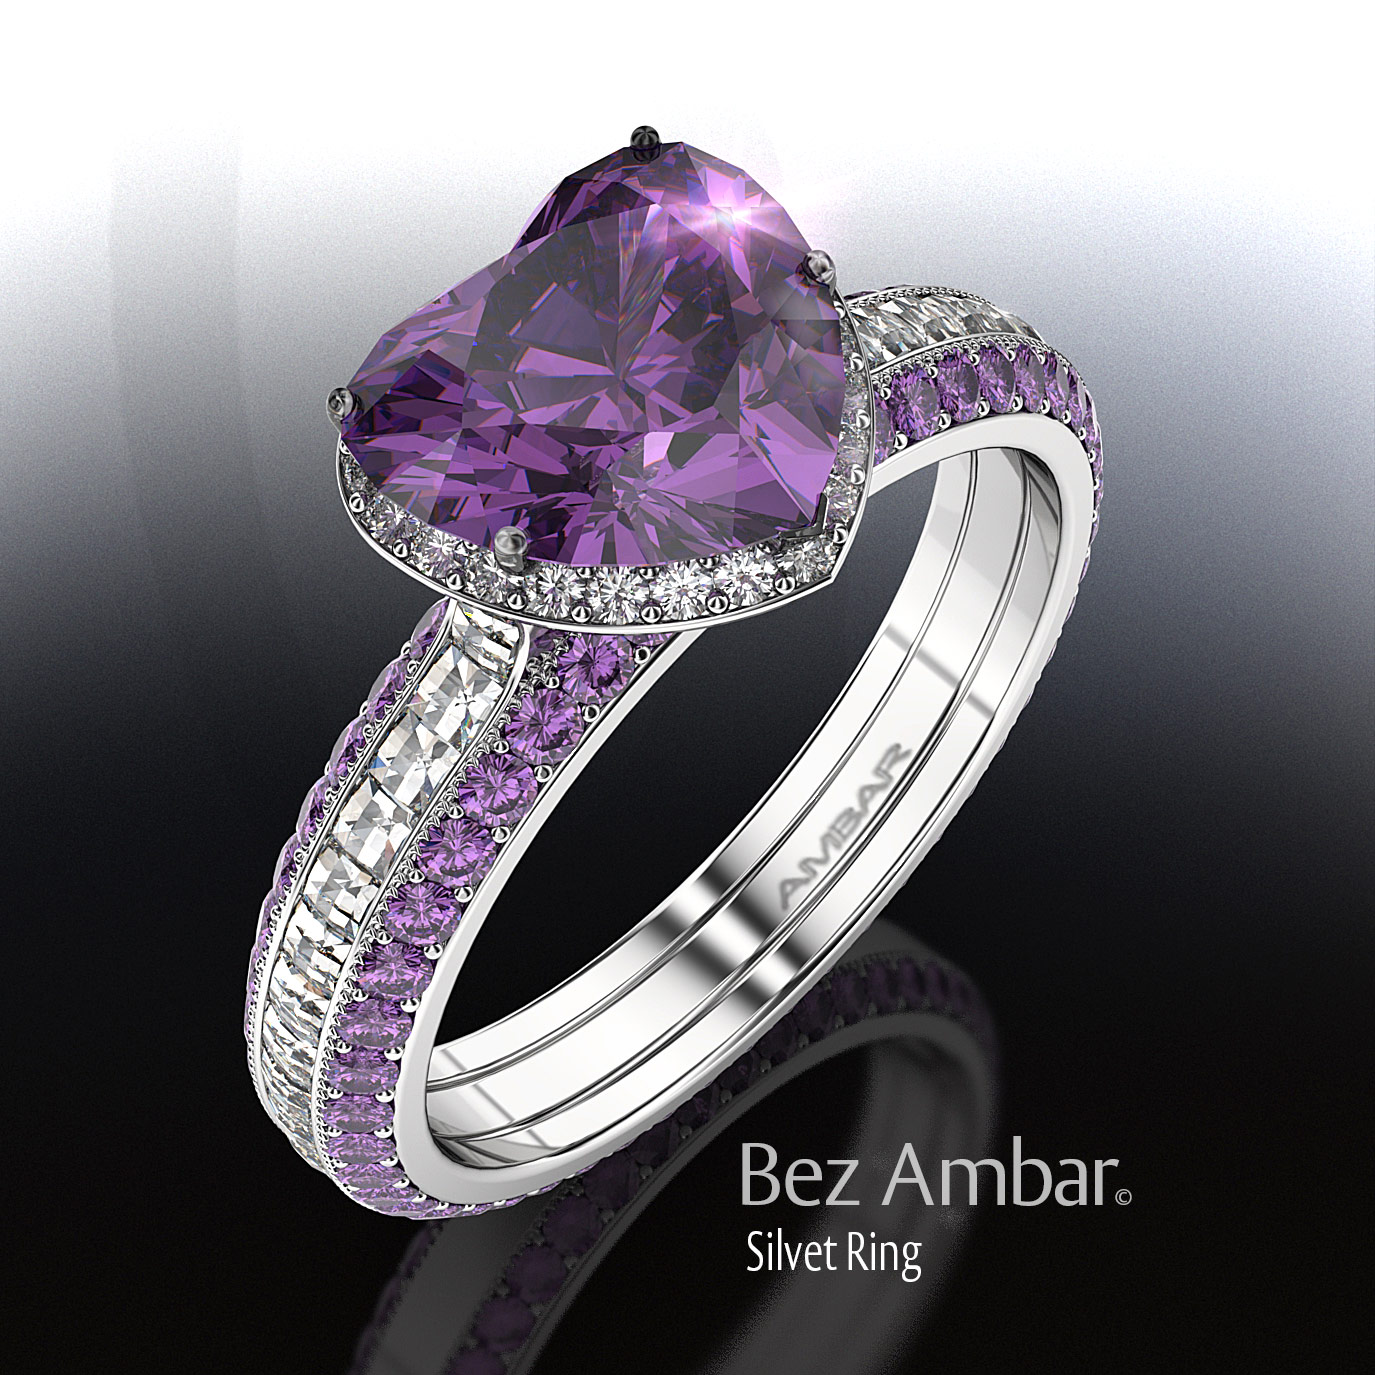 Heart Shaped Amethyst Ring Set Silvet